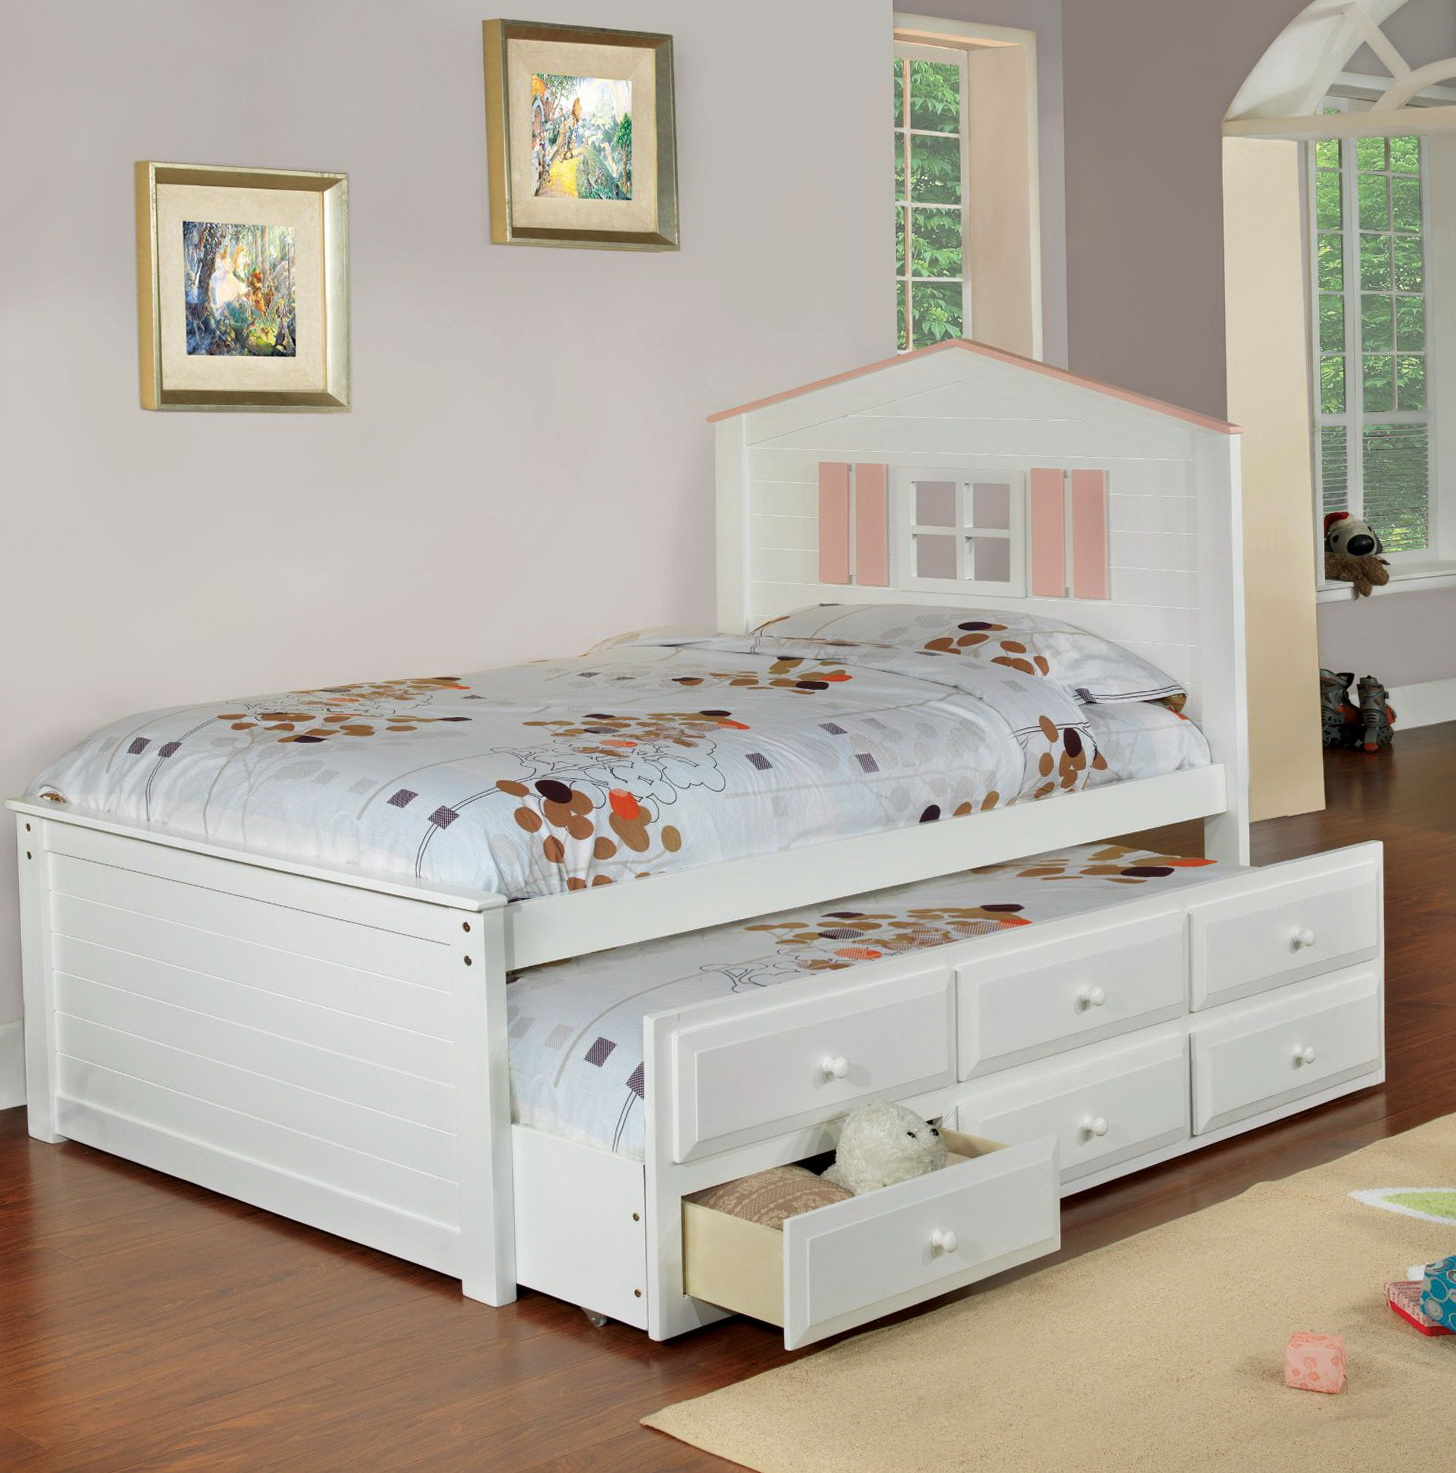 Beds With Drawers For Girlsbeds With Drawers For Girls